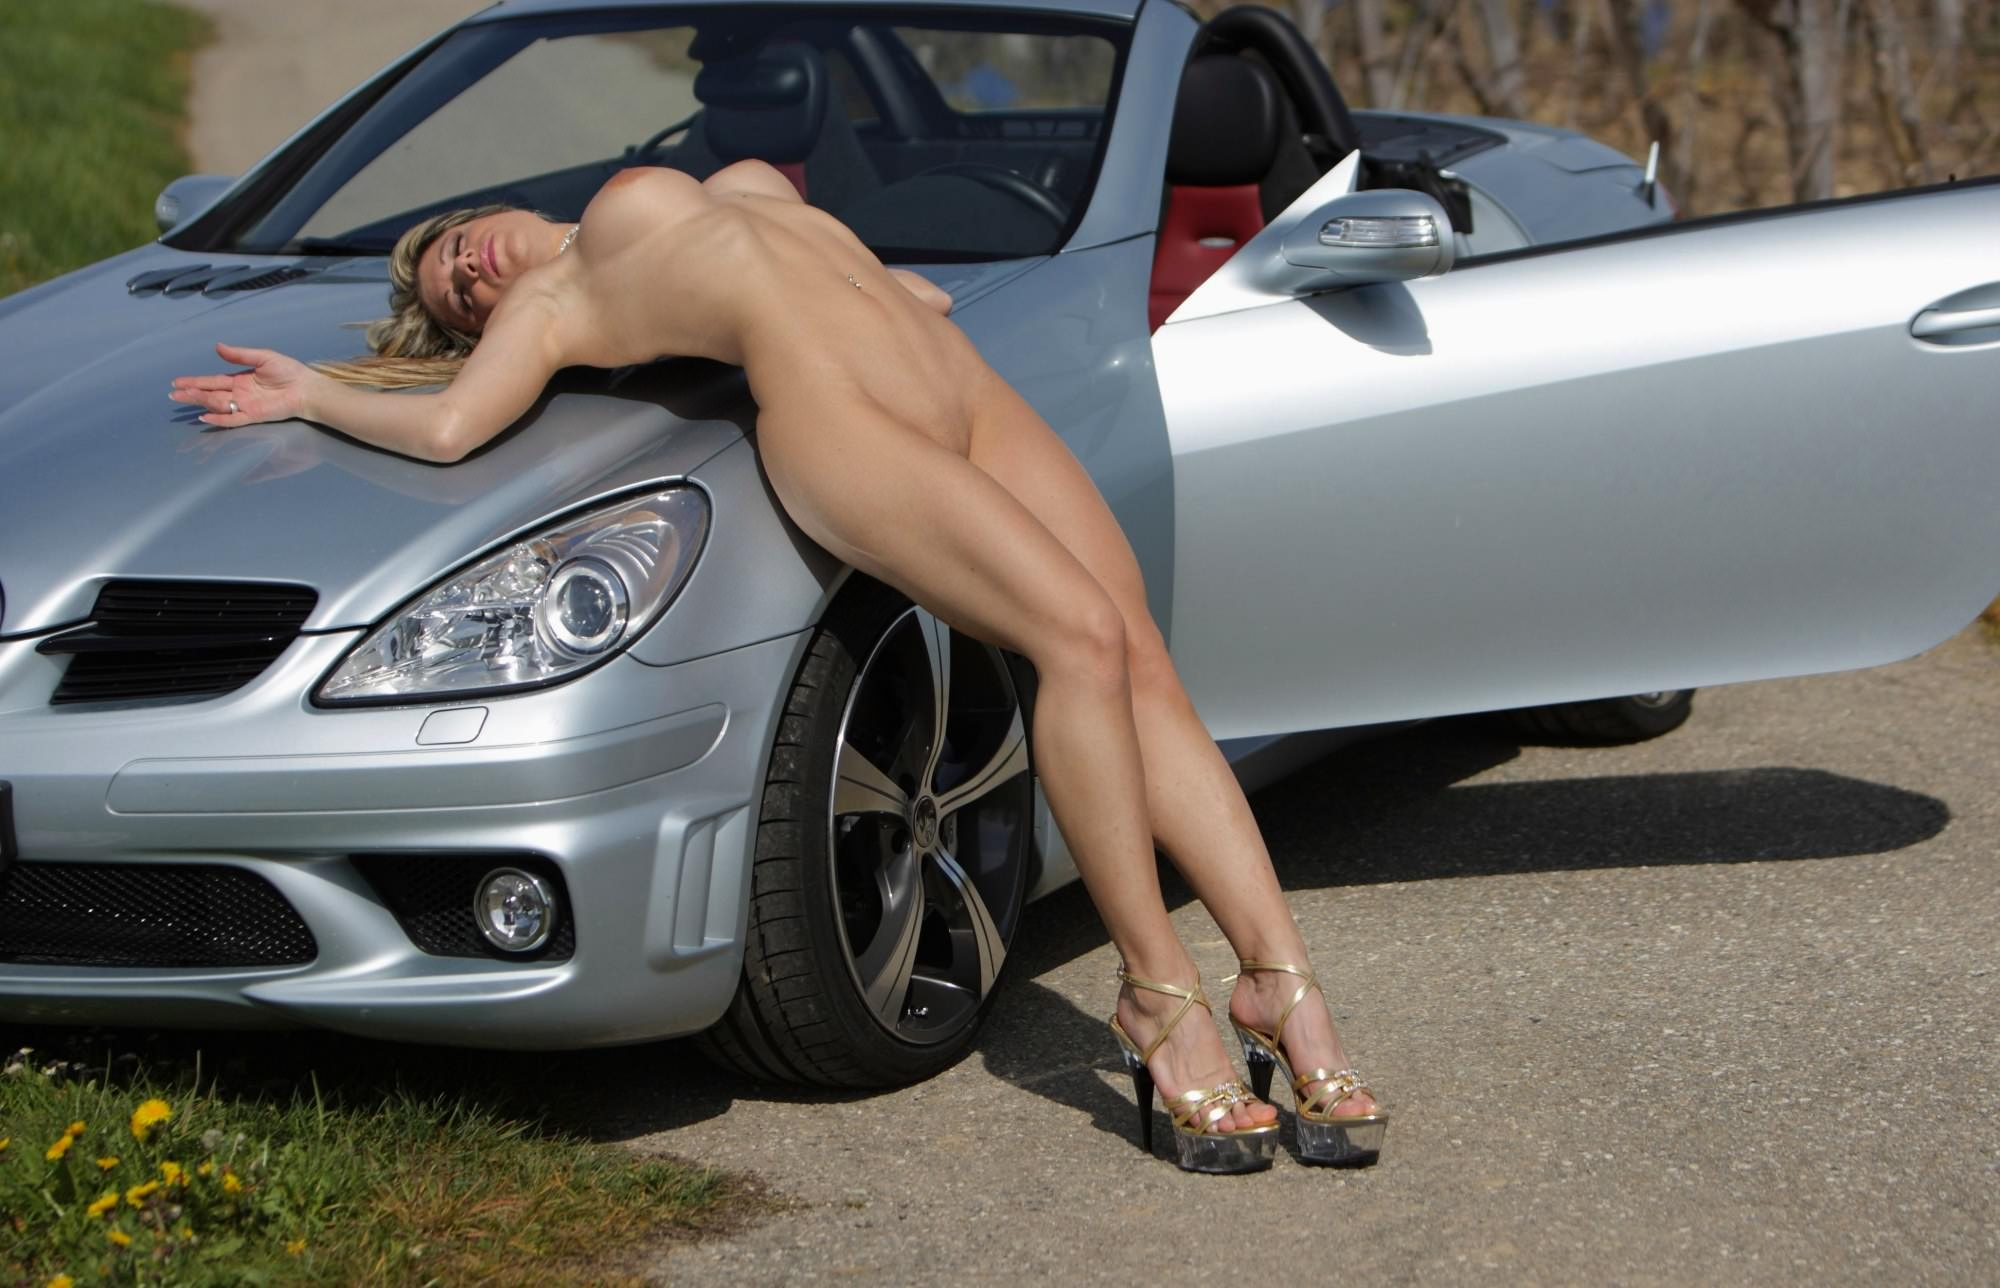 Cherry nude girls and cars